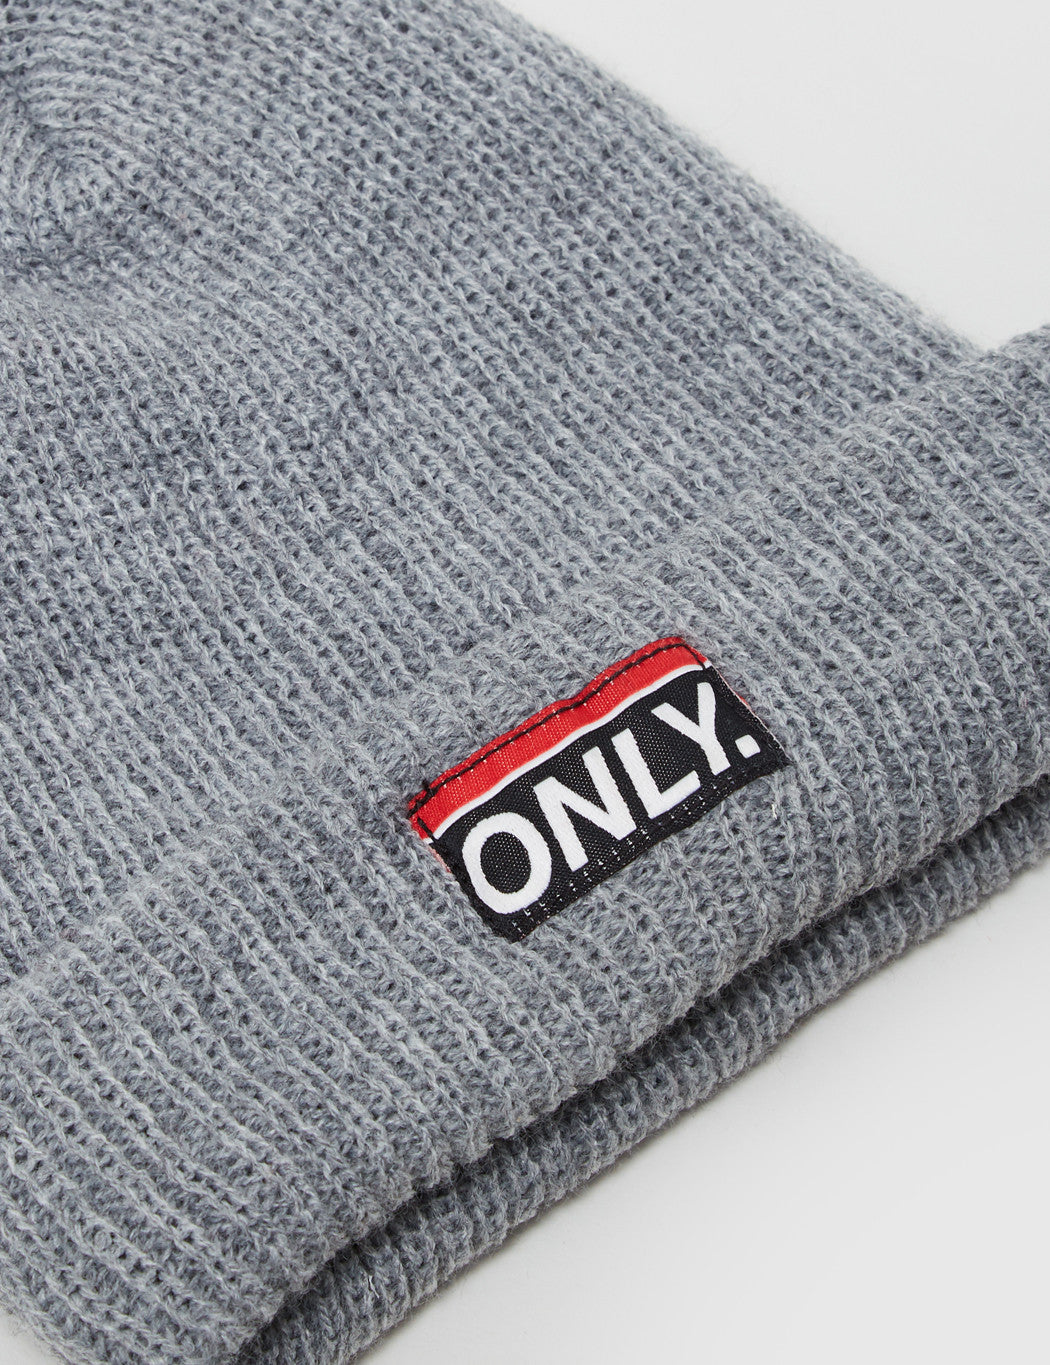 Only NY Subway Beanie Hat - Heather Grey